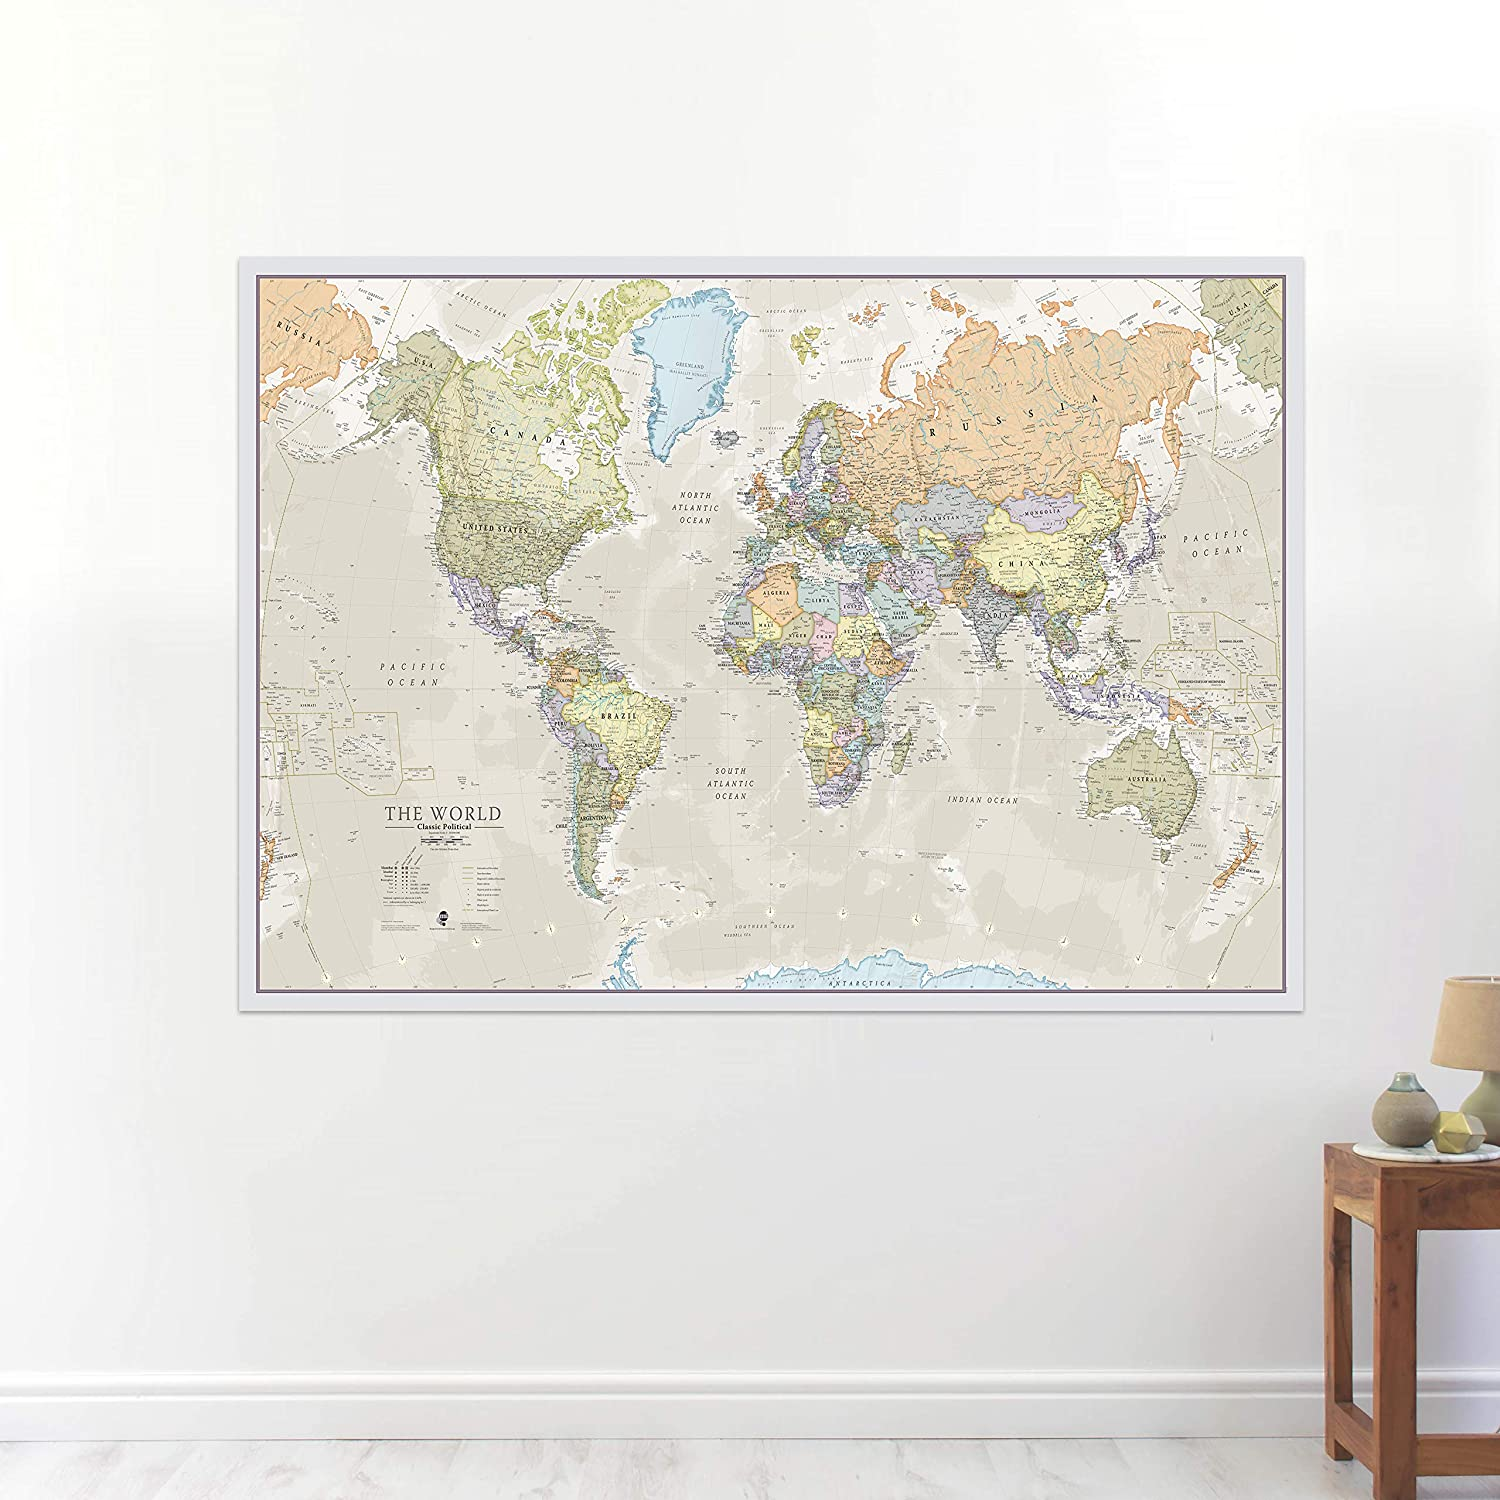 Amazon.com : Maps International Classic World Wall Map - Map of The ...